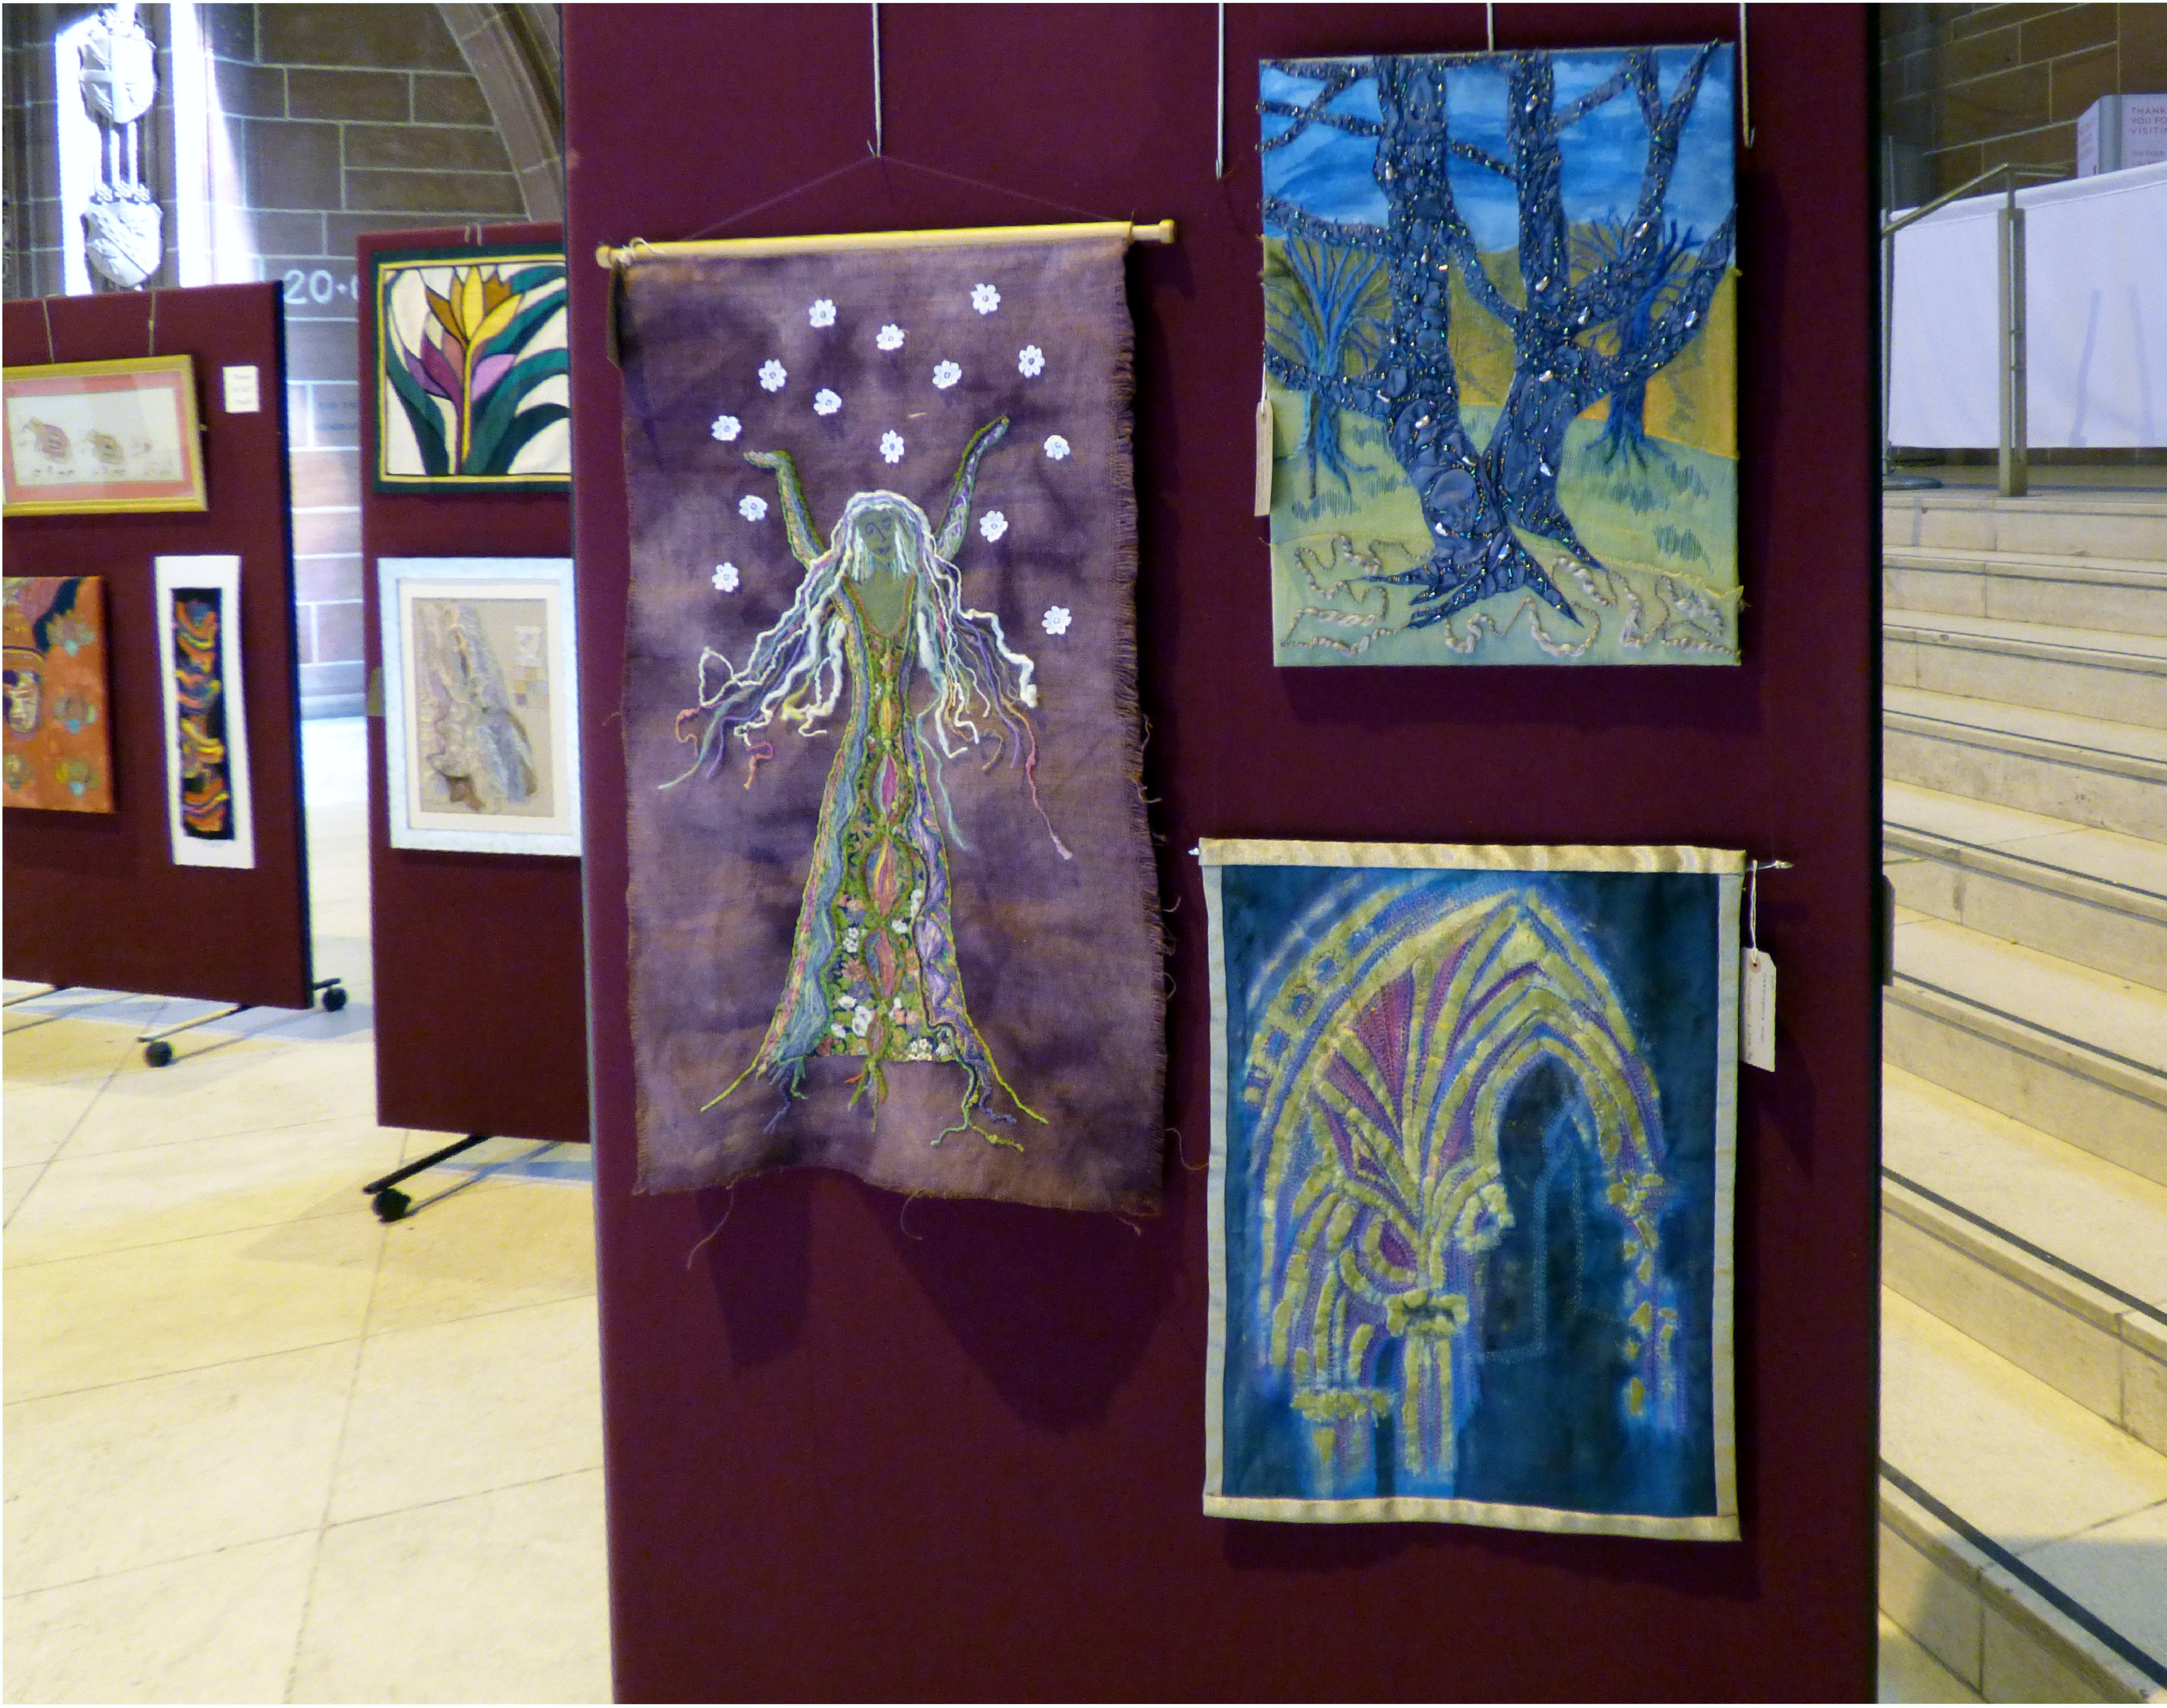 GODDESS OF GROWTH by Sarah Lowes, 60 YEARS IN THE MAKING by Val Heron and INSPIRATION by Elsie Watkins at 60 Glorious Years exhibition 2016